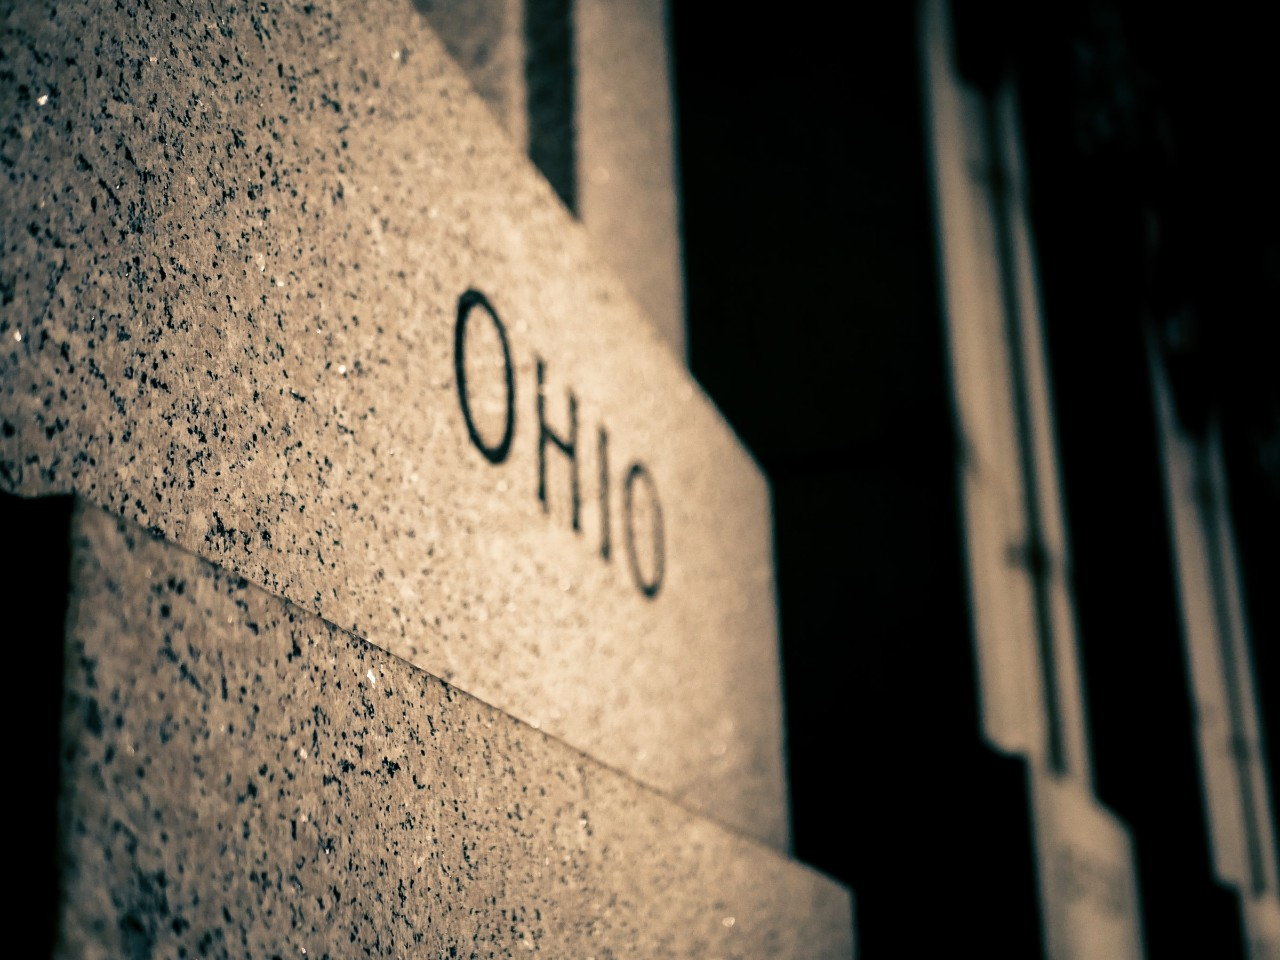 Ohio spelled out in concrete